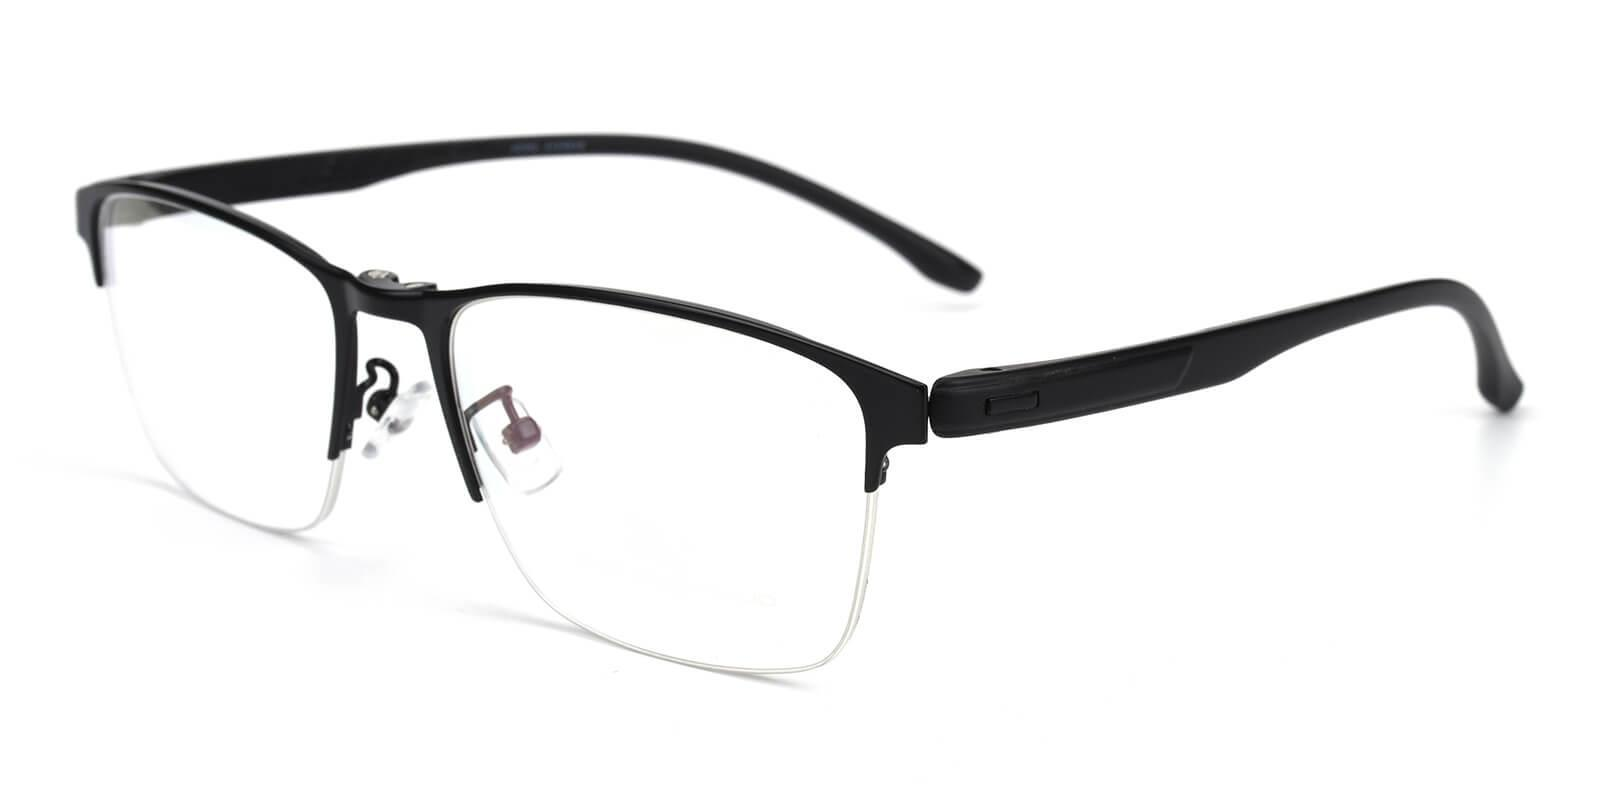 Ferrous Black Metal Eyeglasses , NosePads , SpringHinges Frames from ABBE Glasses